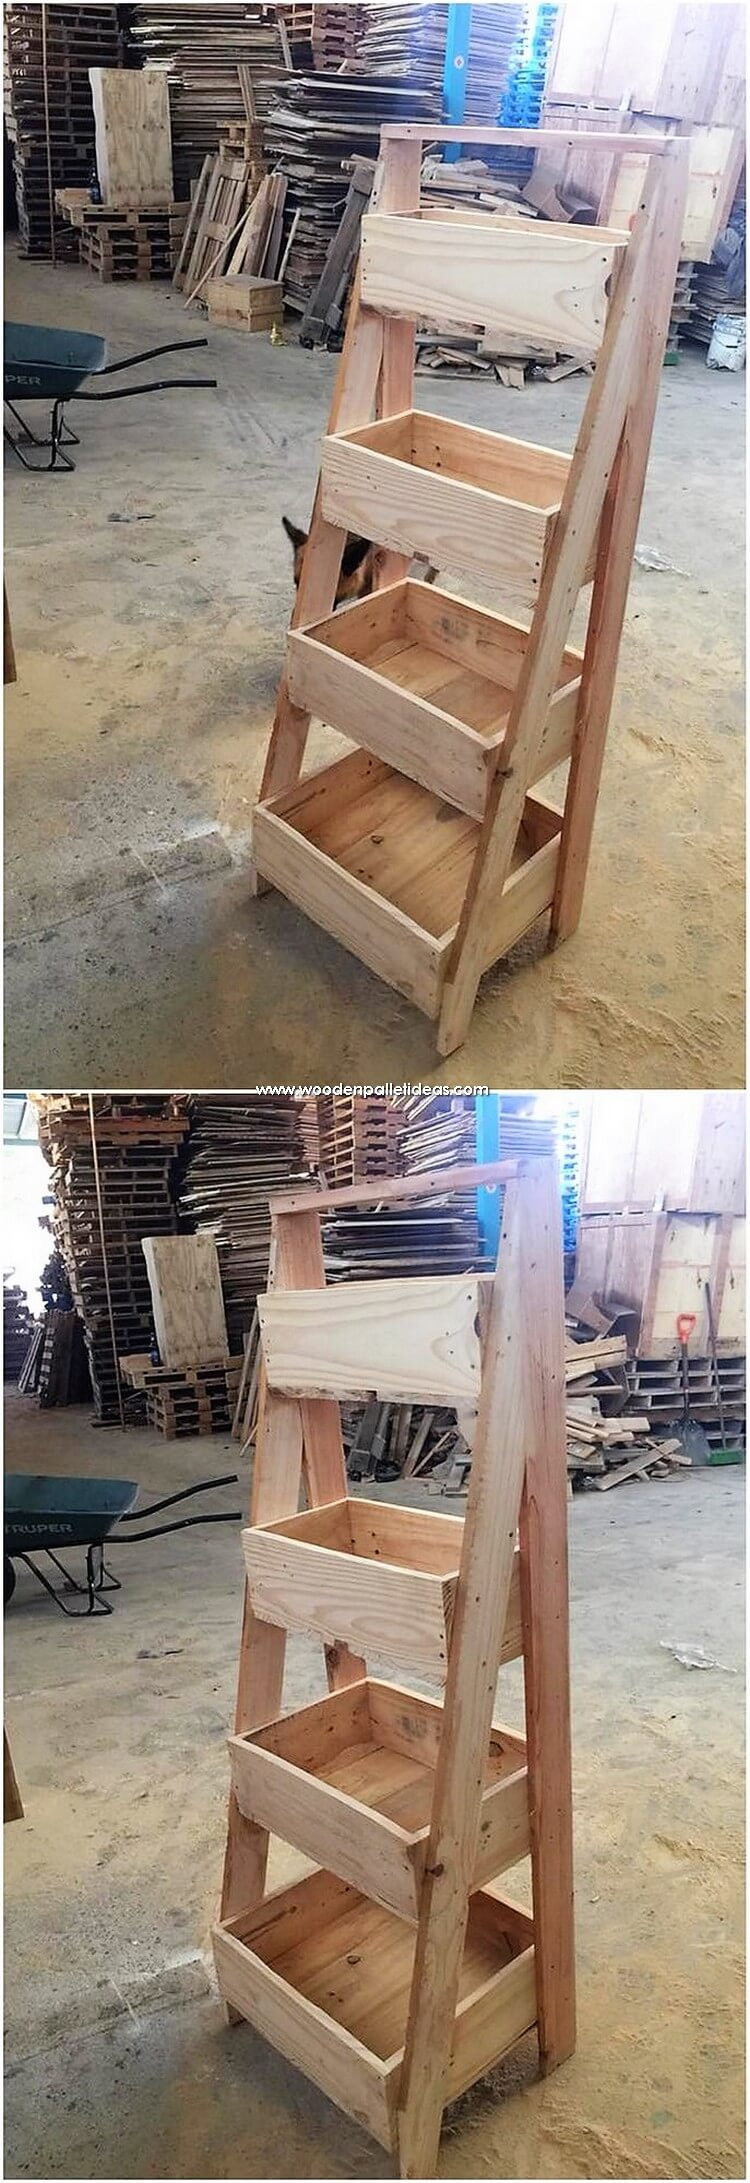 Pallet Vegetable and Fruits Rack